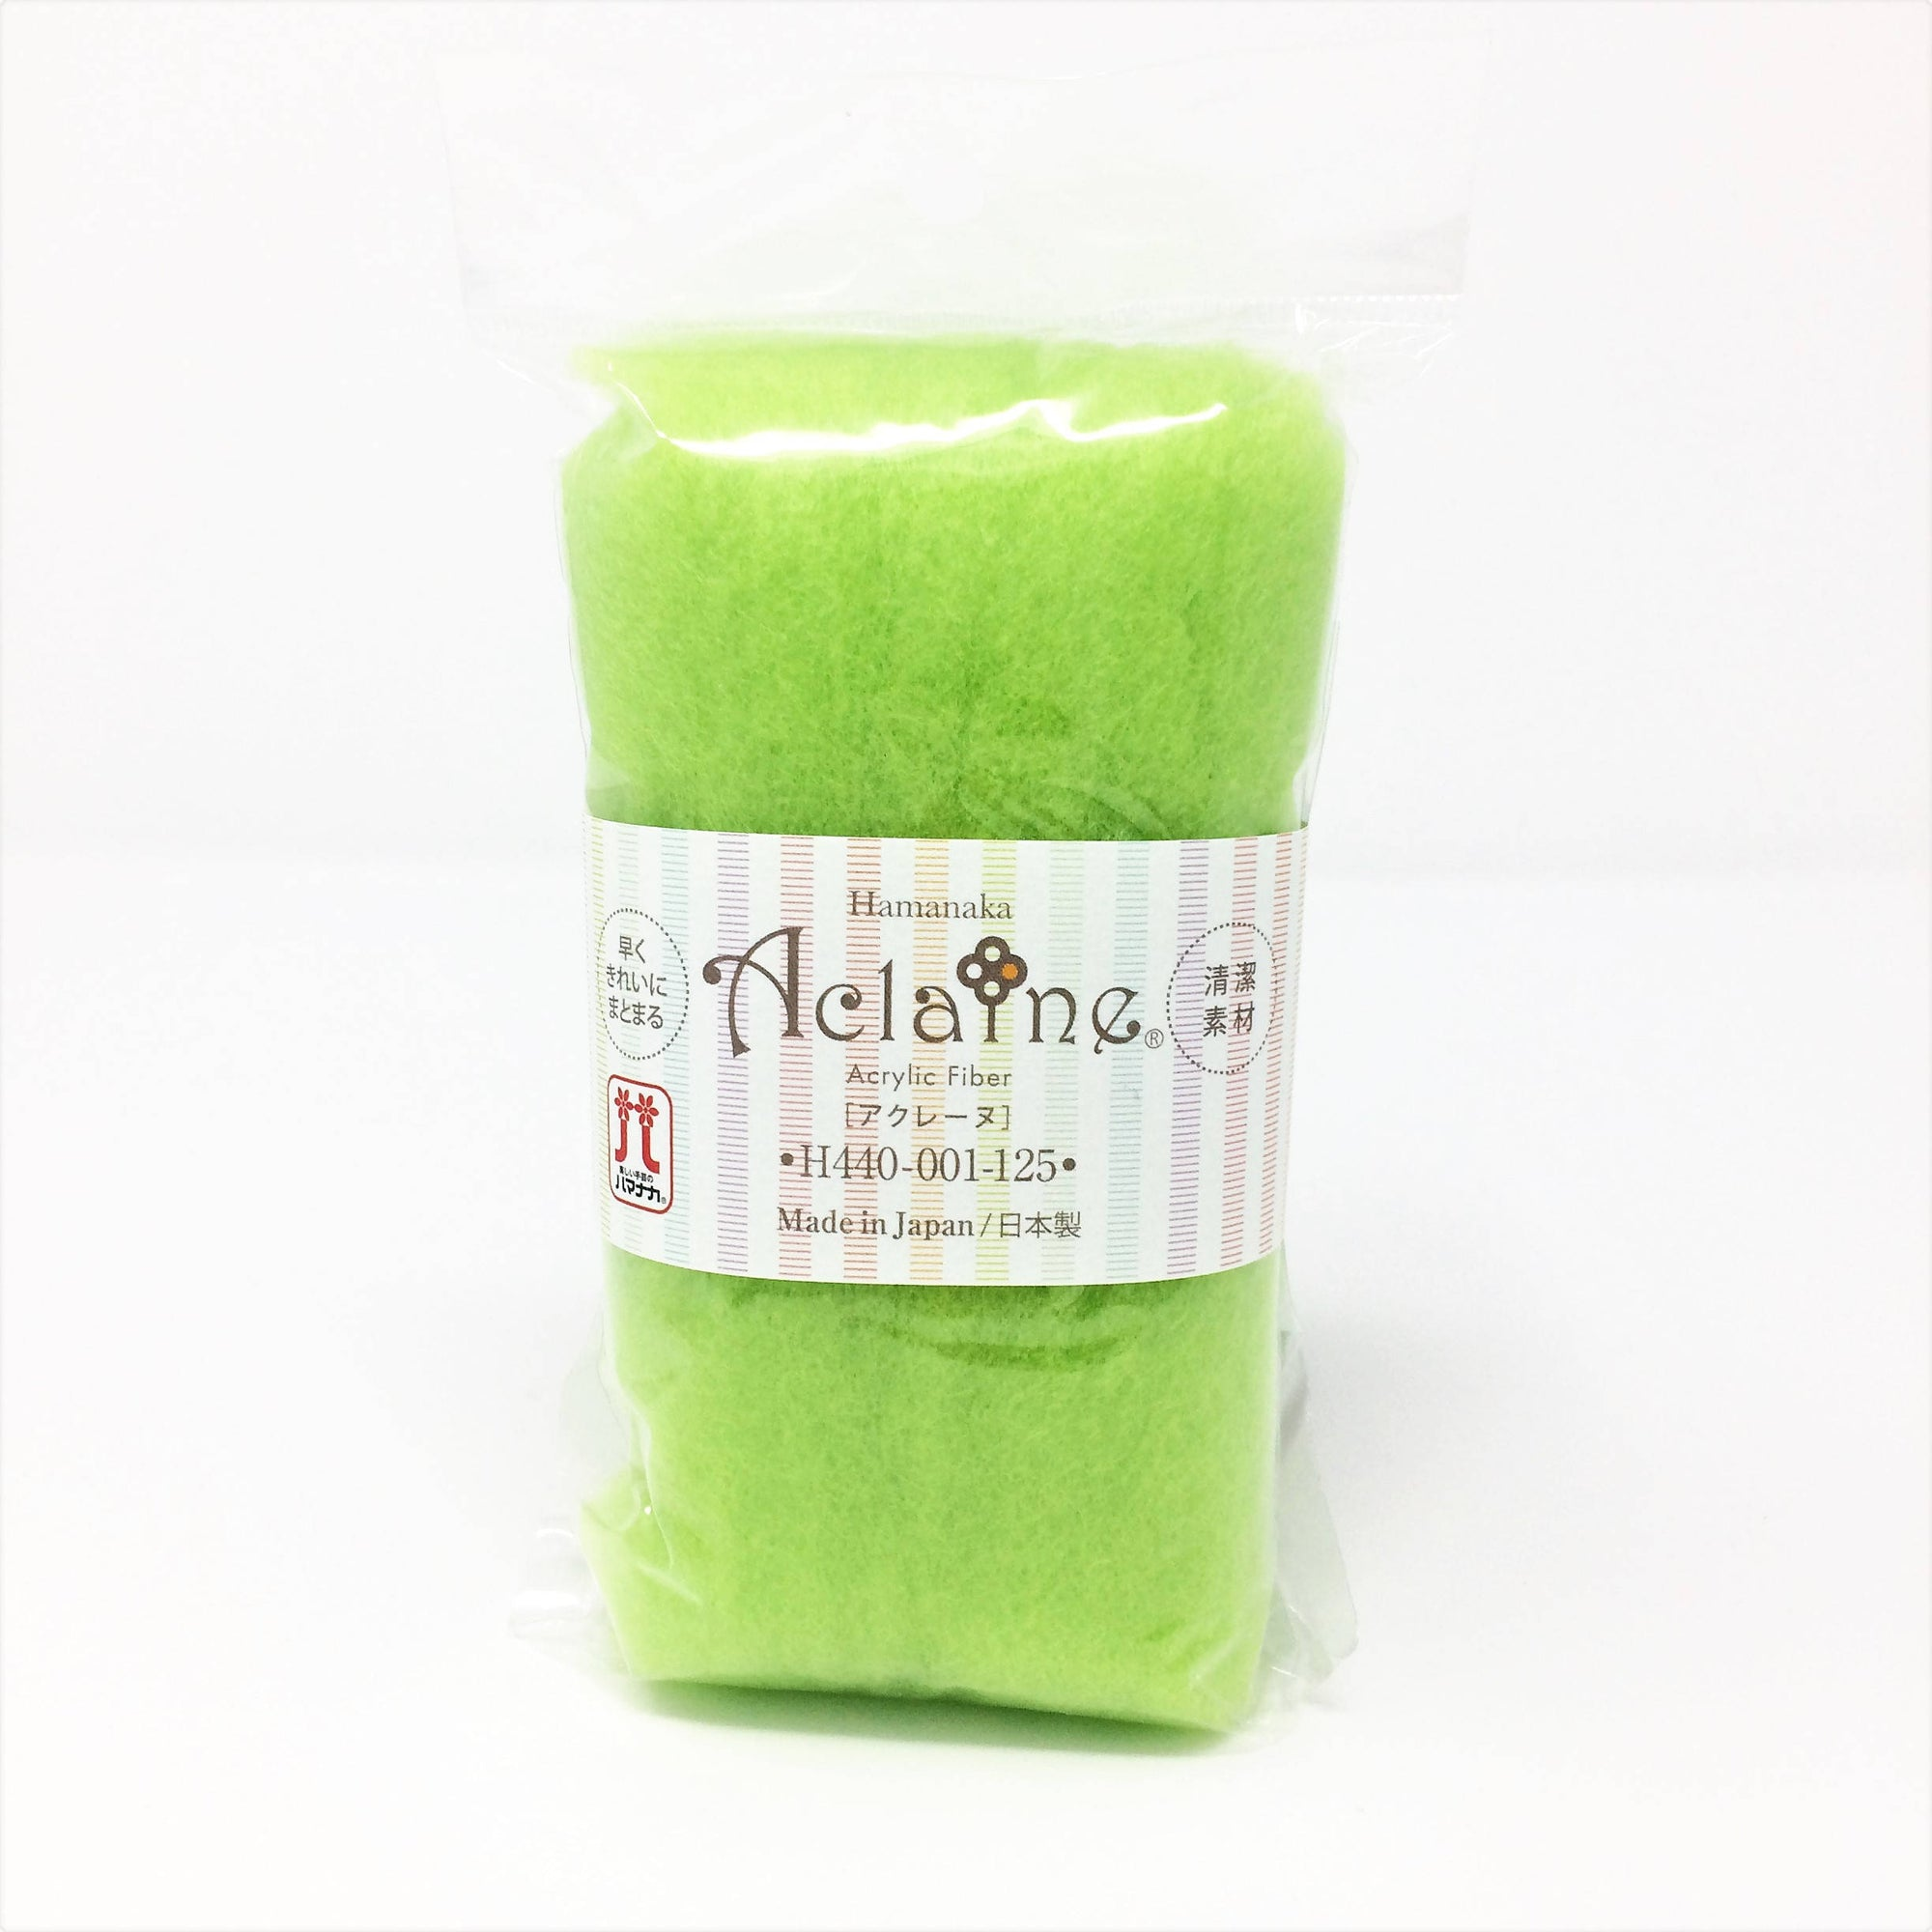 Japanese Hamanaka Aclaine Acrylic Fibre for Needle Felting. 15g pack - Green